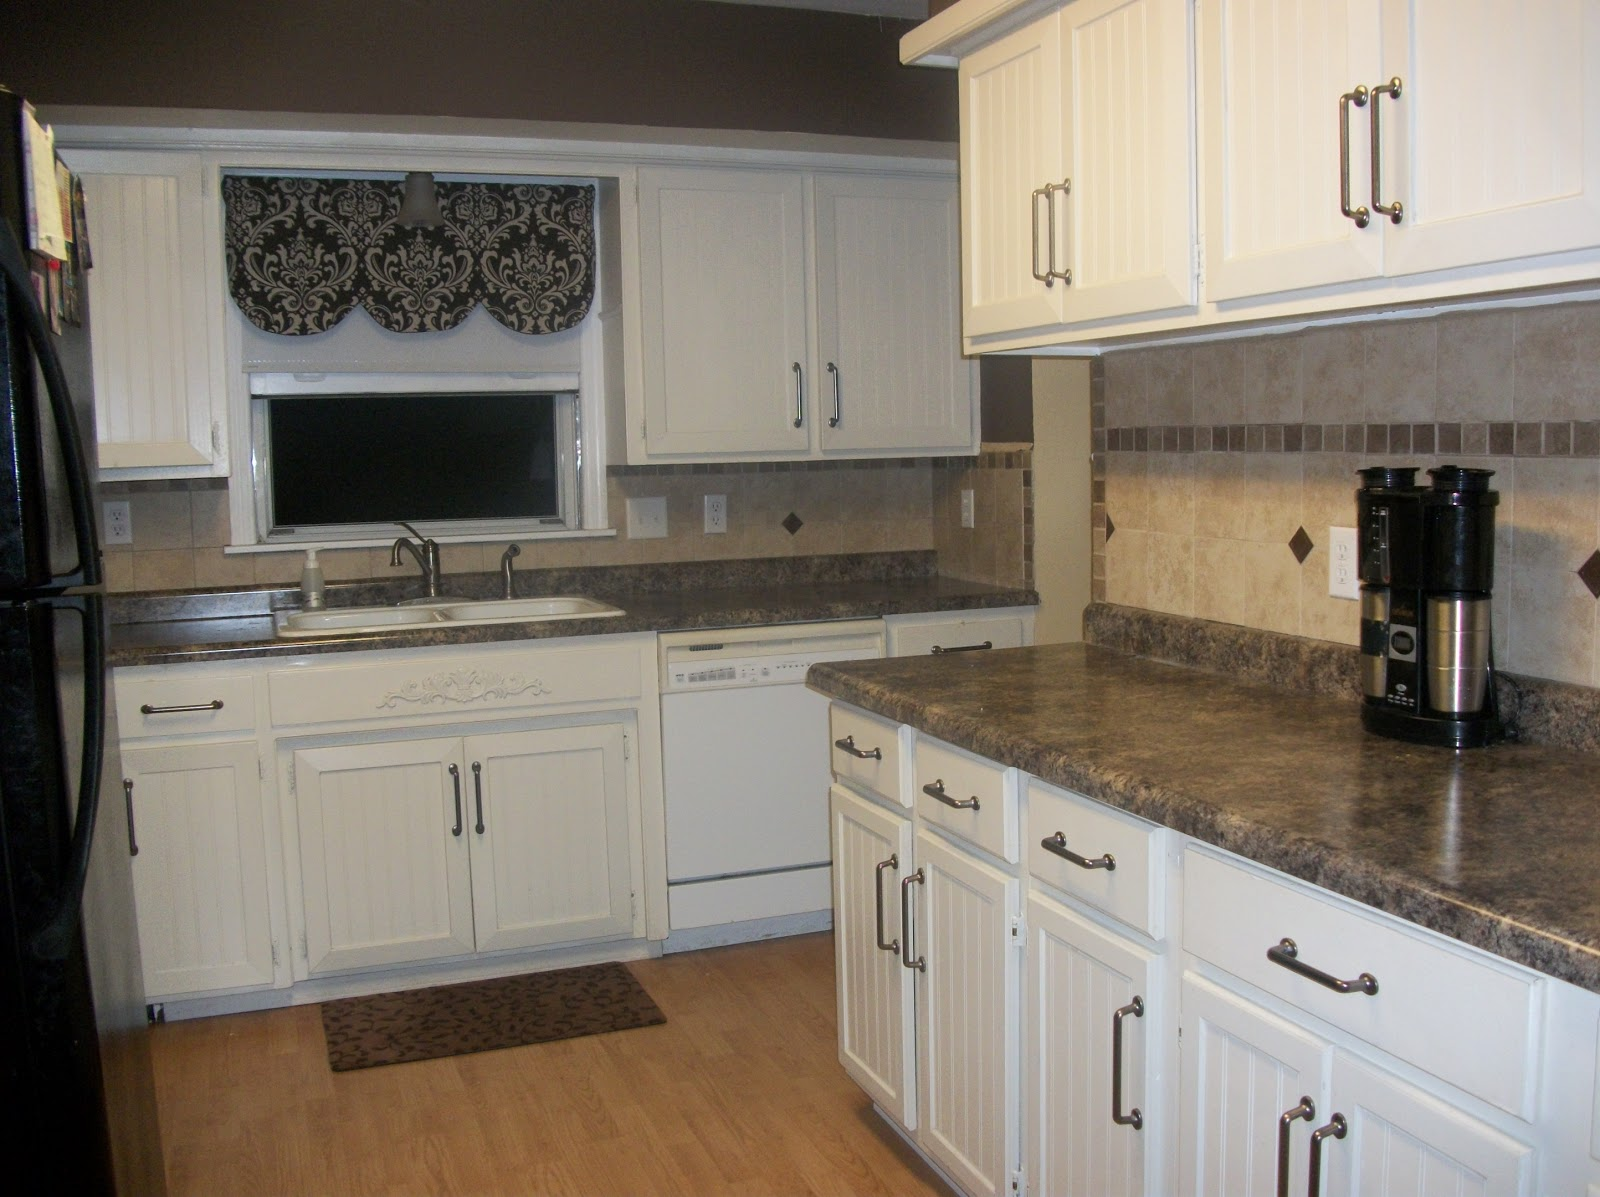 Guest Post Kitchen Remodel On A Low Budget A Turtle 39 S Life For Me